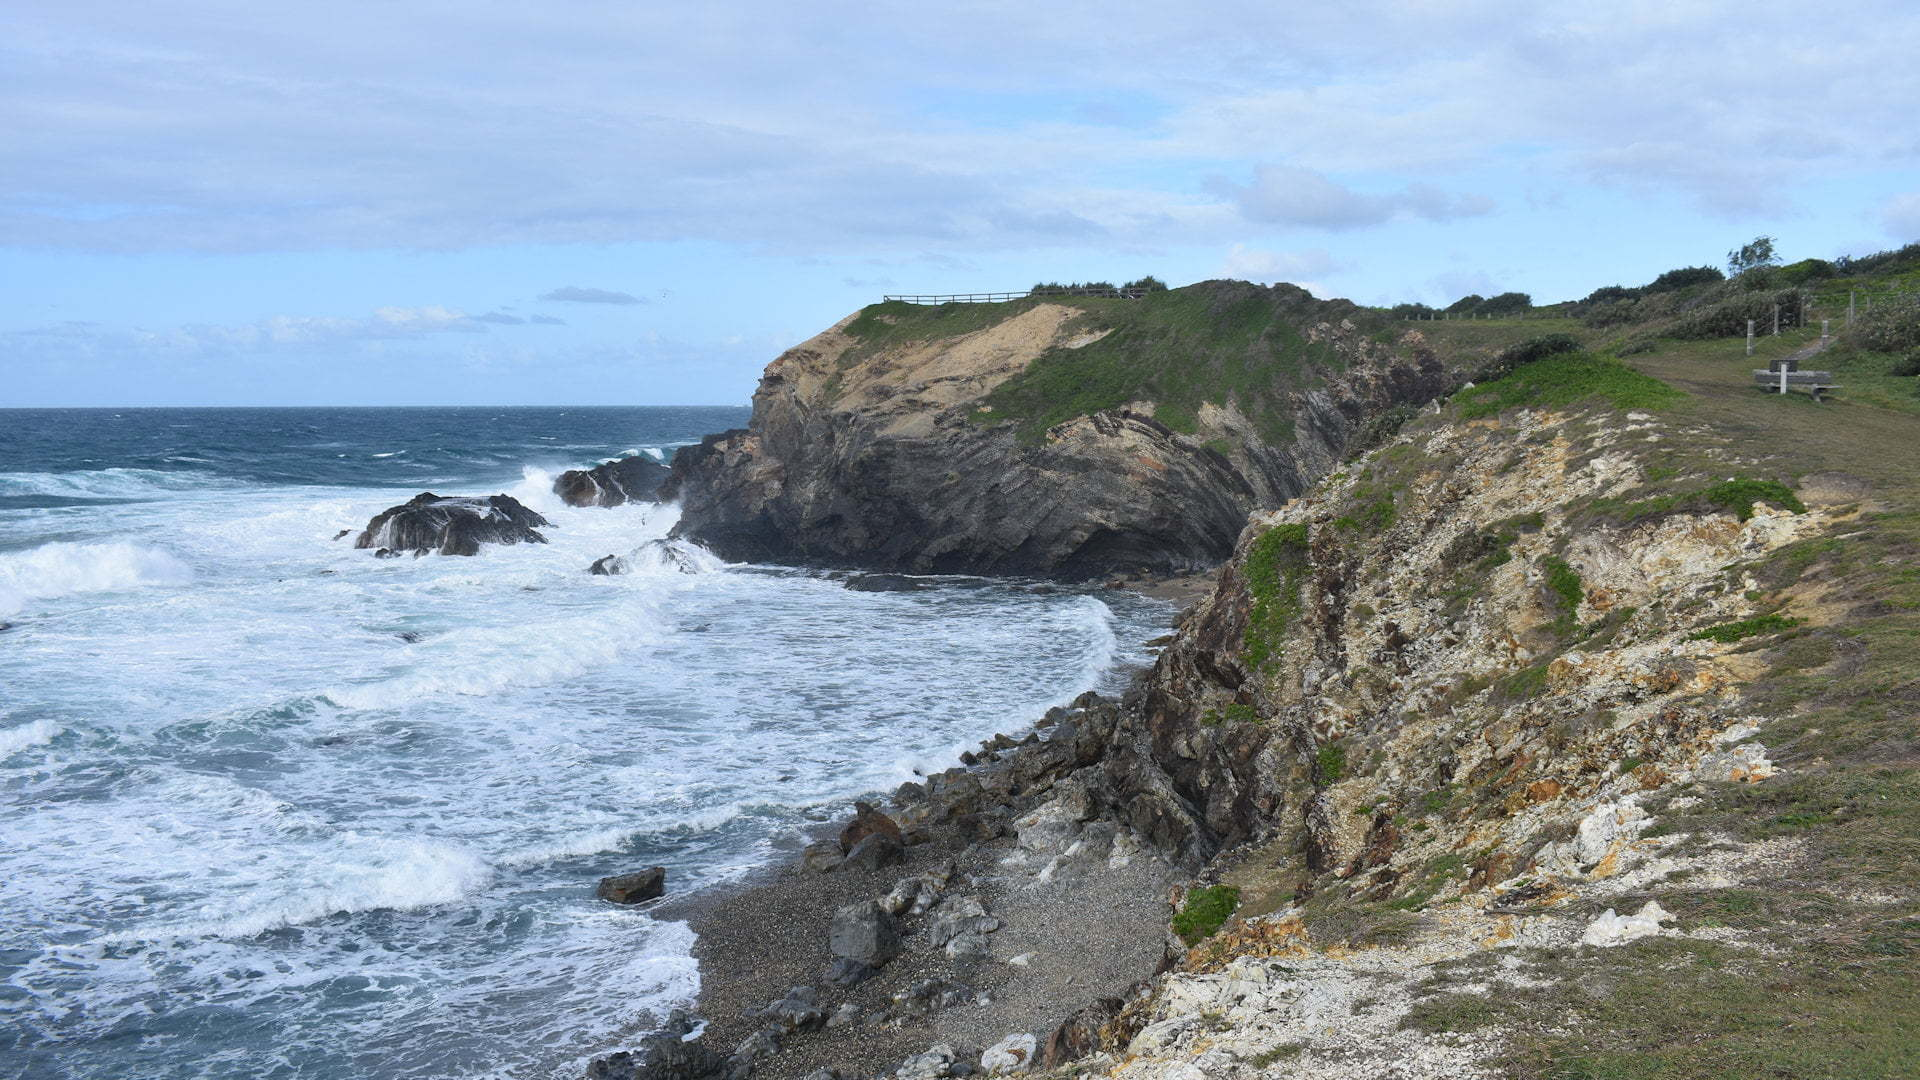 Brooms Head viewed from the walking track starting at the caravan park